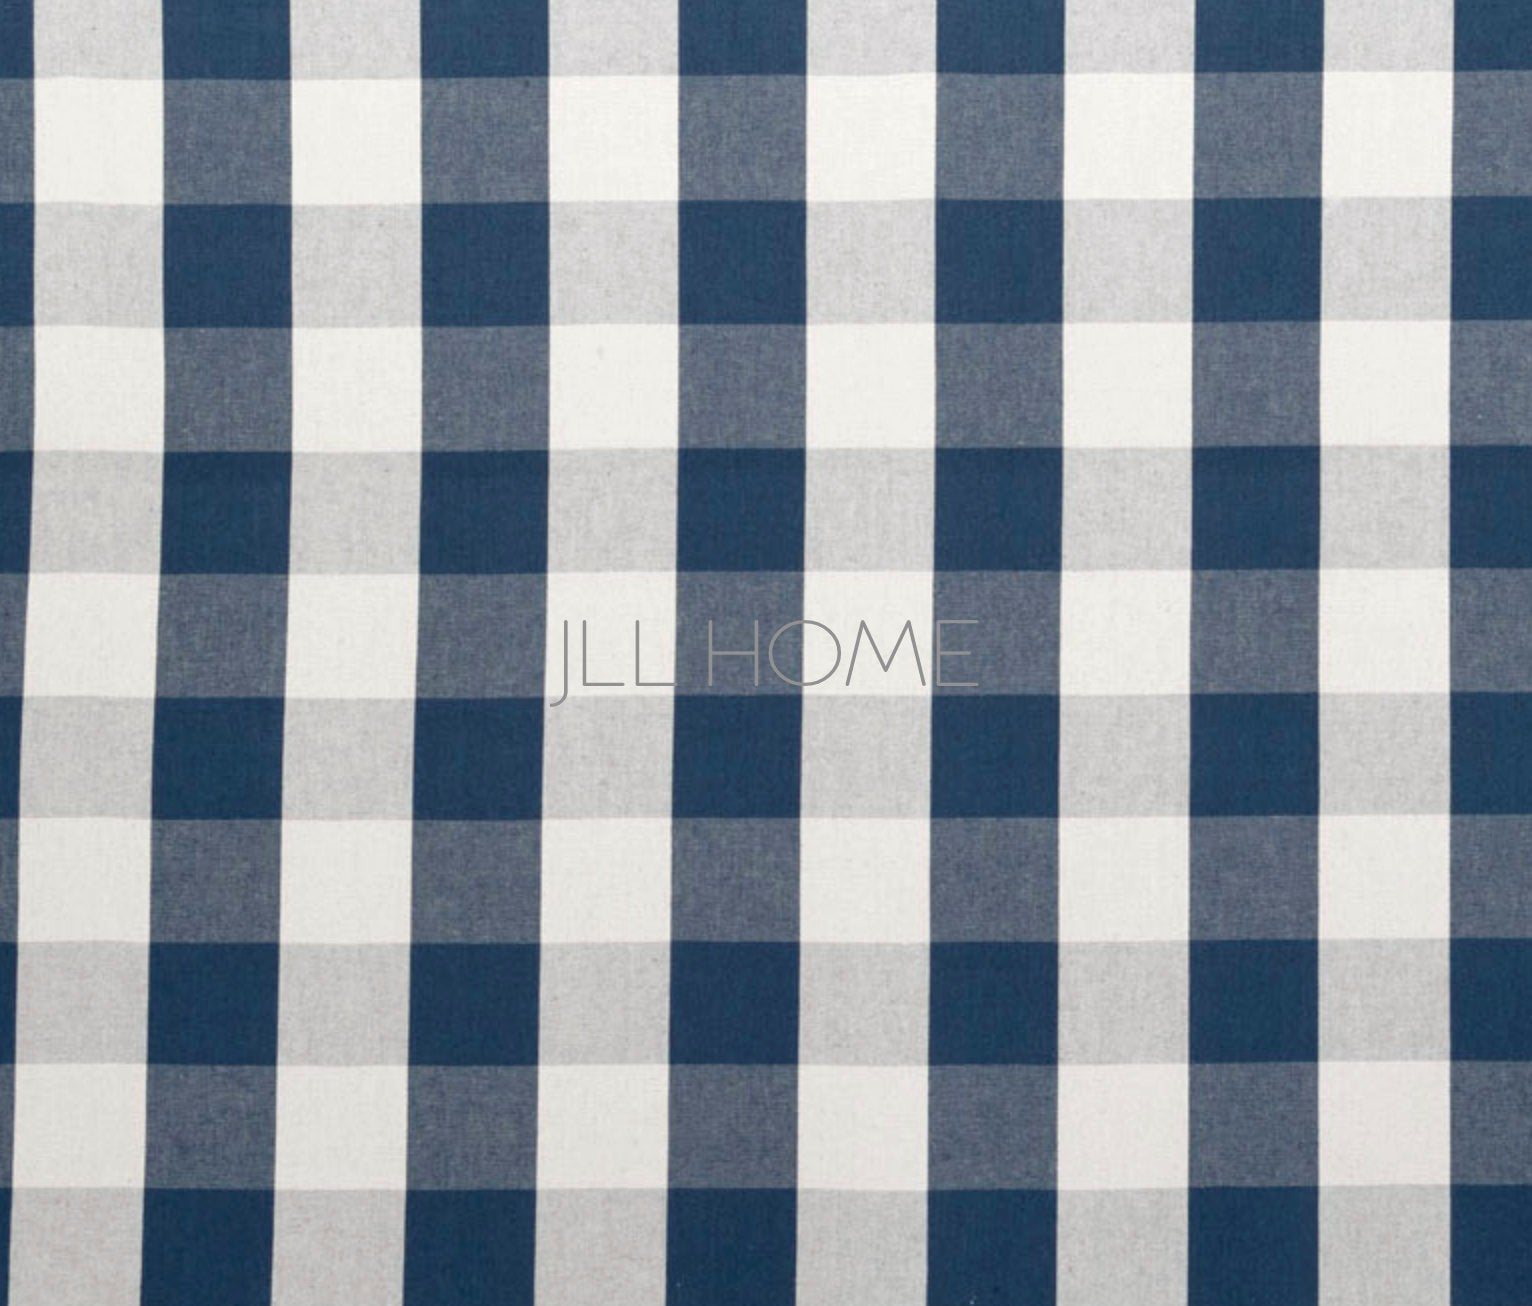 New Farmhouse Curtains Buffalo Check Curtains Blue Plaid Curtains Blue Jll Home